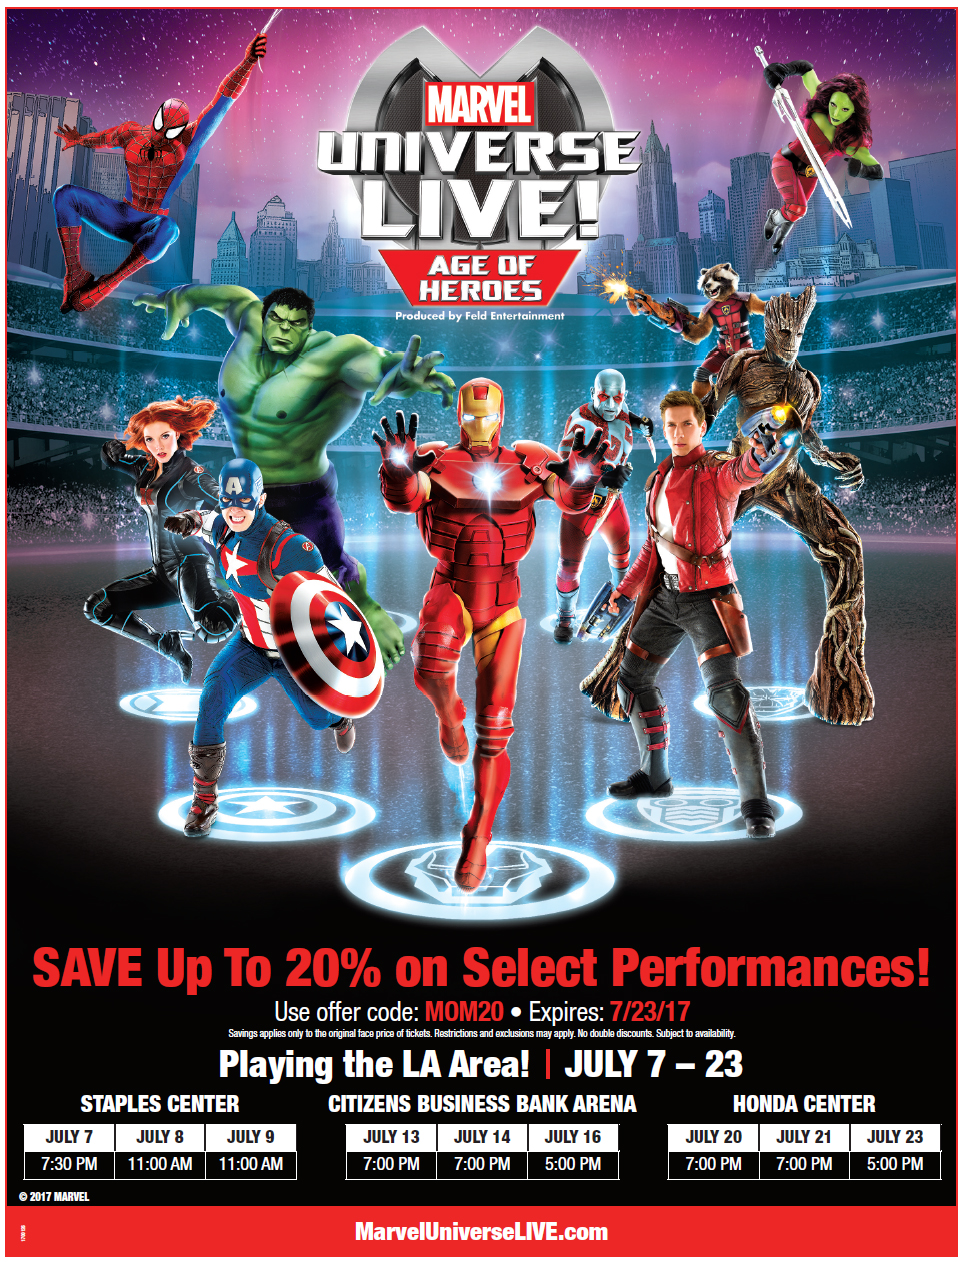 Marvel Universe Live! MOM Discount